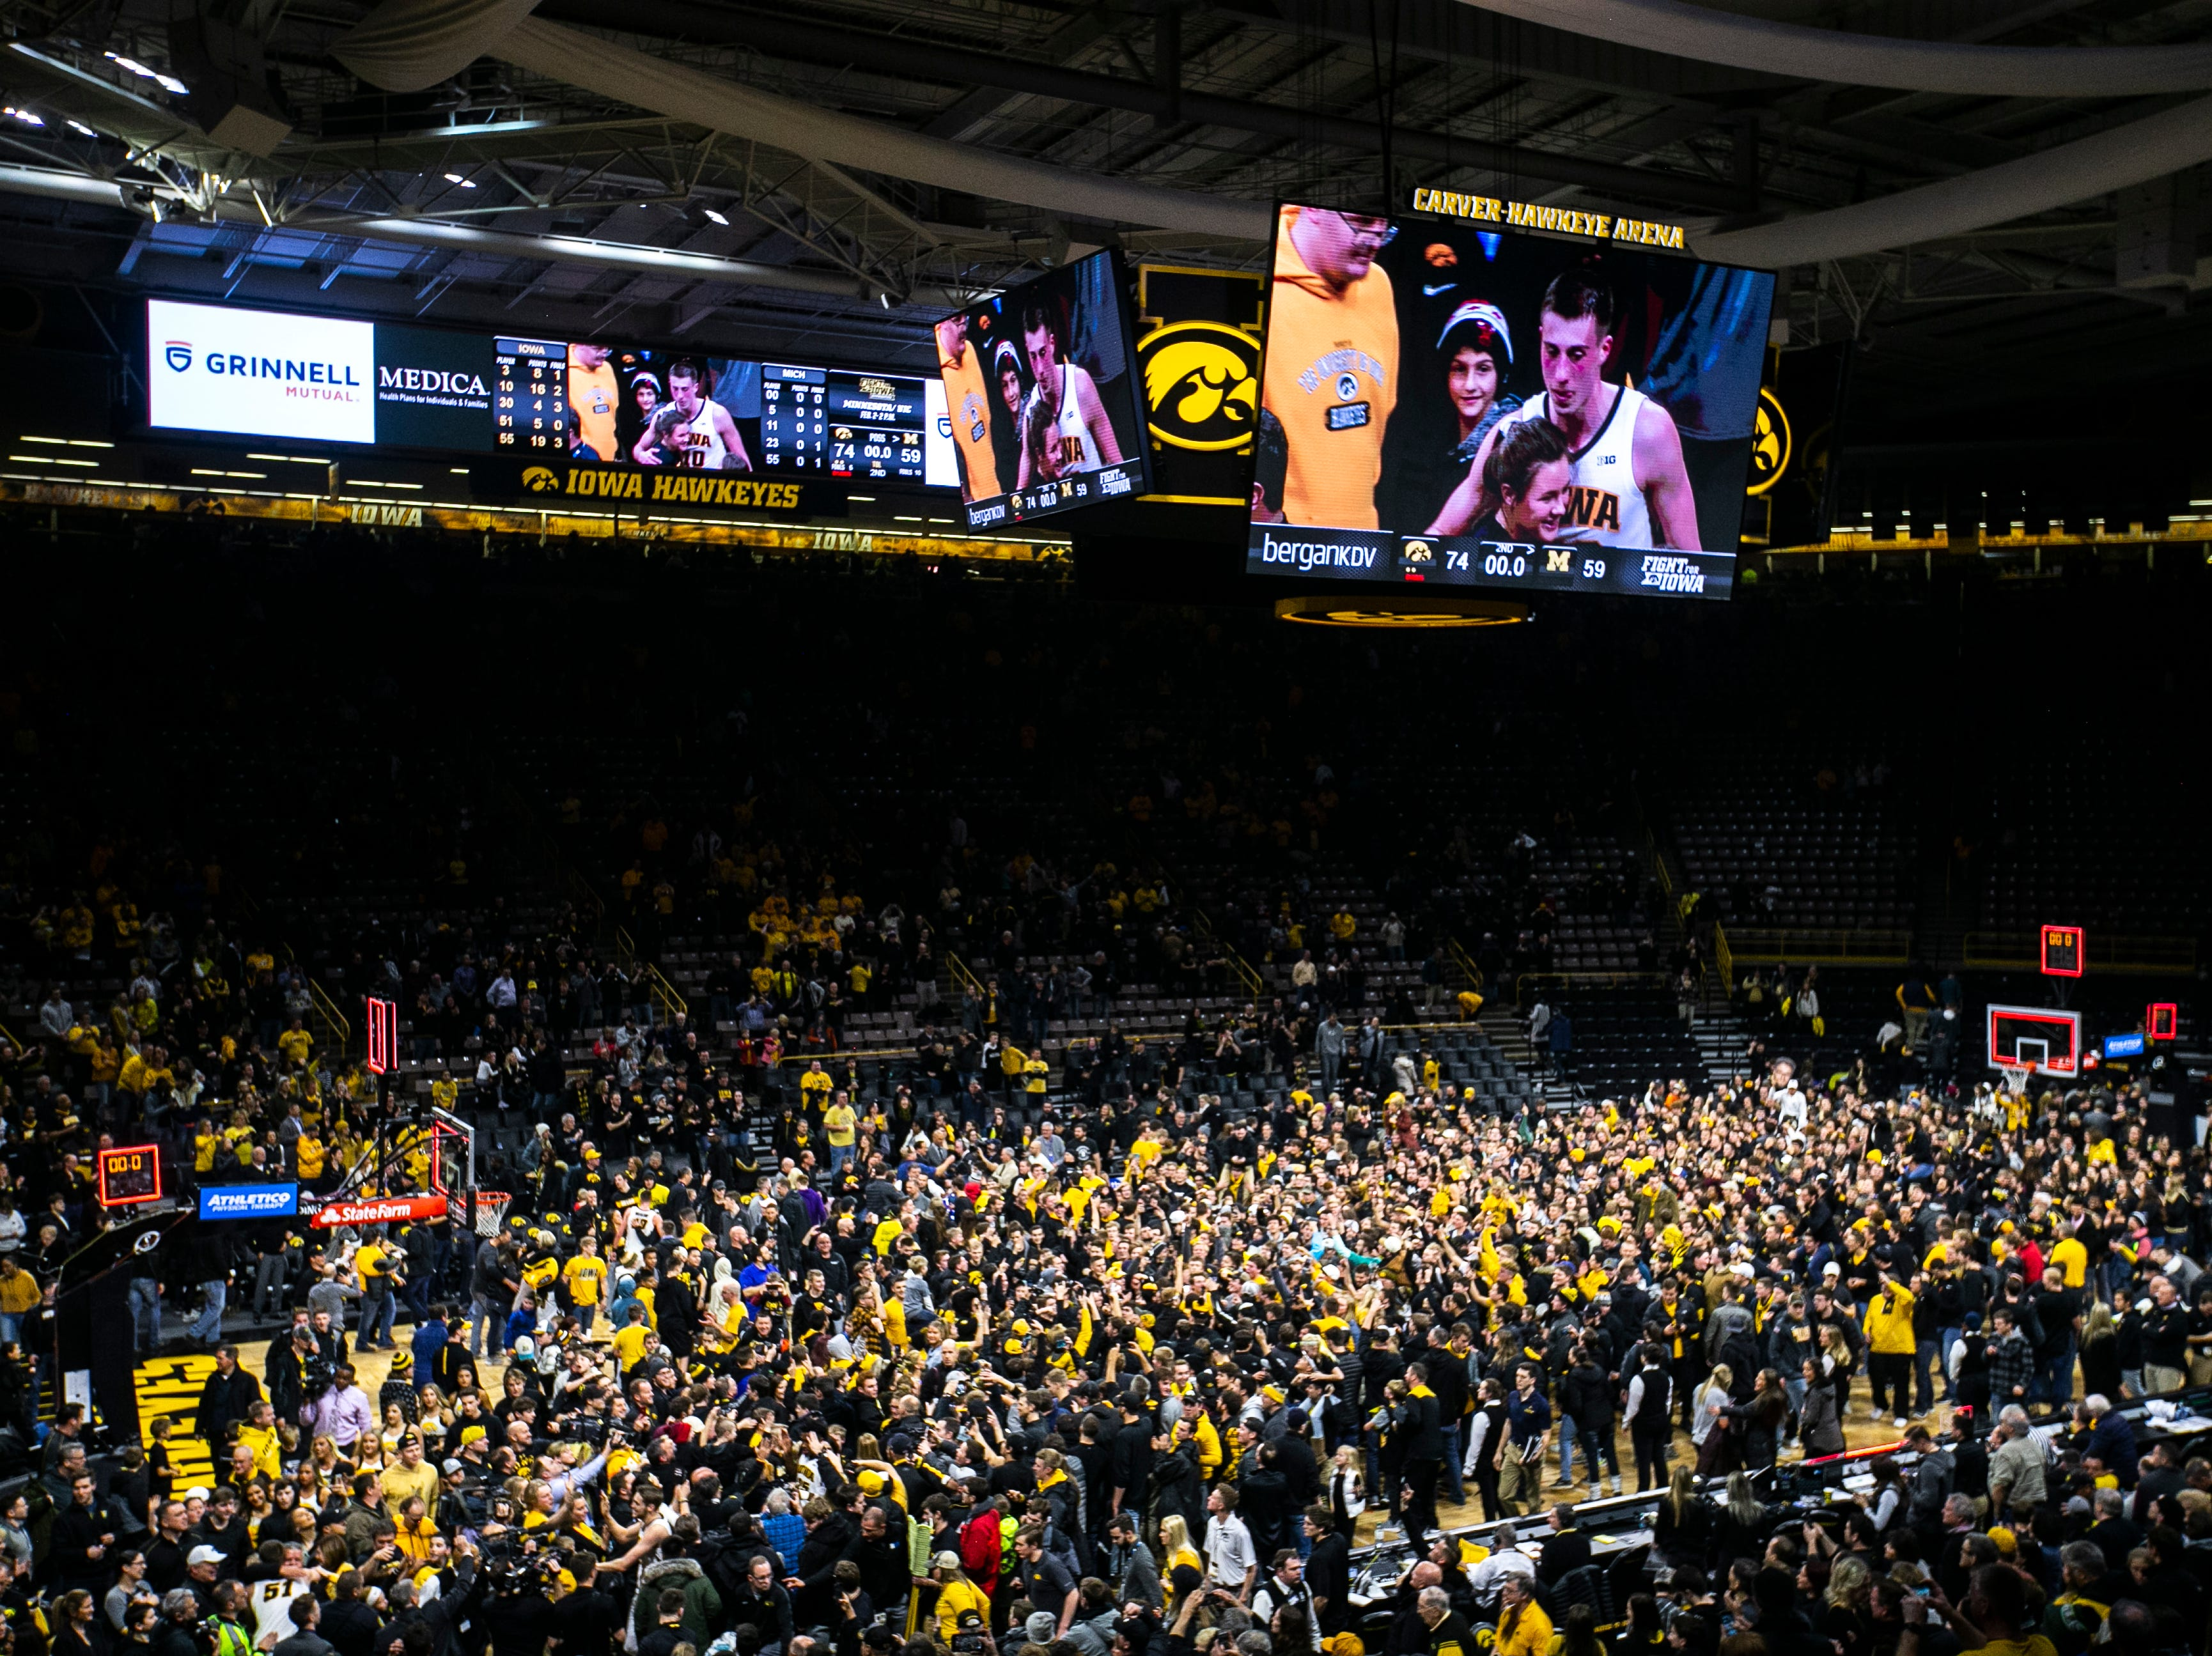 Iowa fans rush the court after a NCAA Big Ten Conference men's basketball game on Friday, Feb. 1, 2019, at Carver-Hawkeye Arena in Iowa City, Iowa. The Hawkeyes defeated Michigan's Wolverines, 74-59.